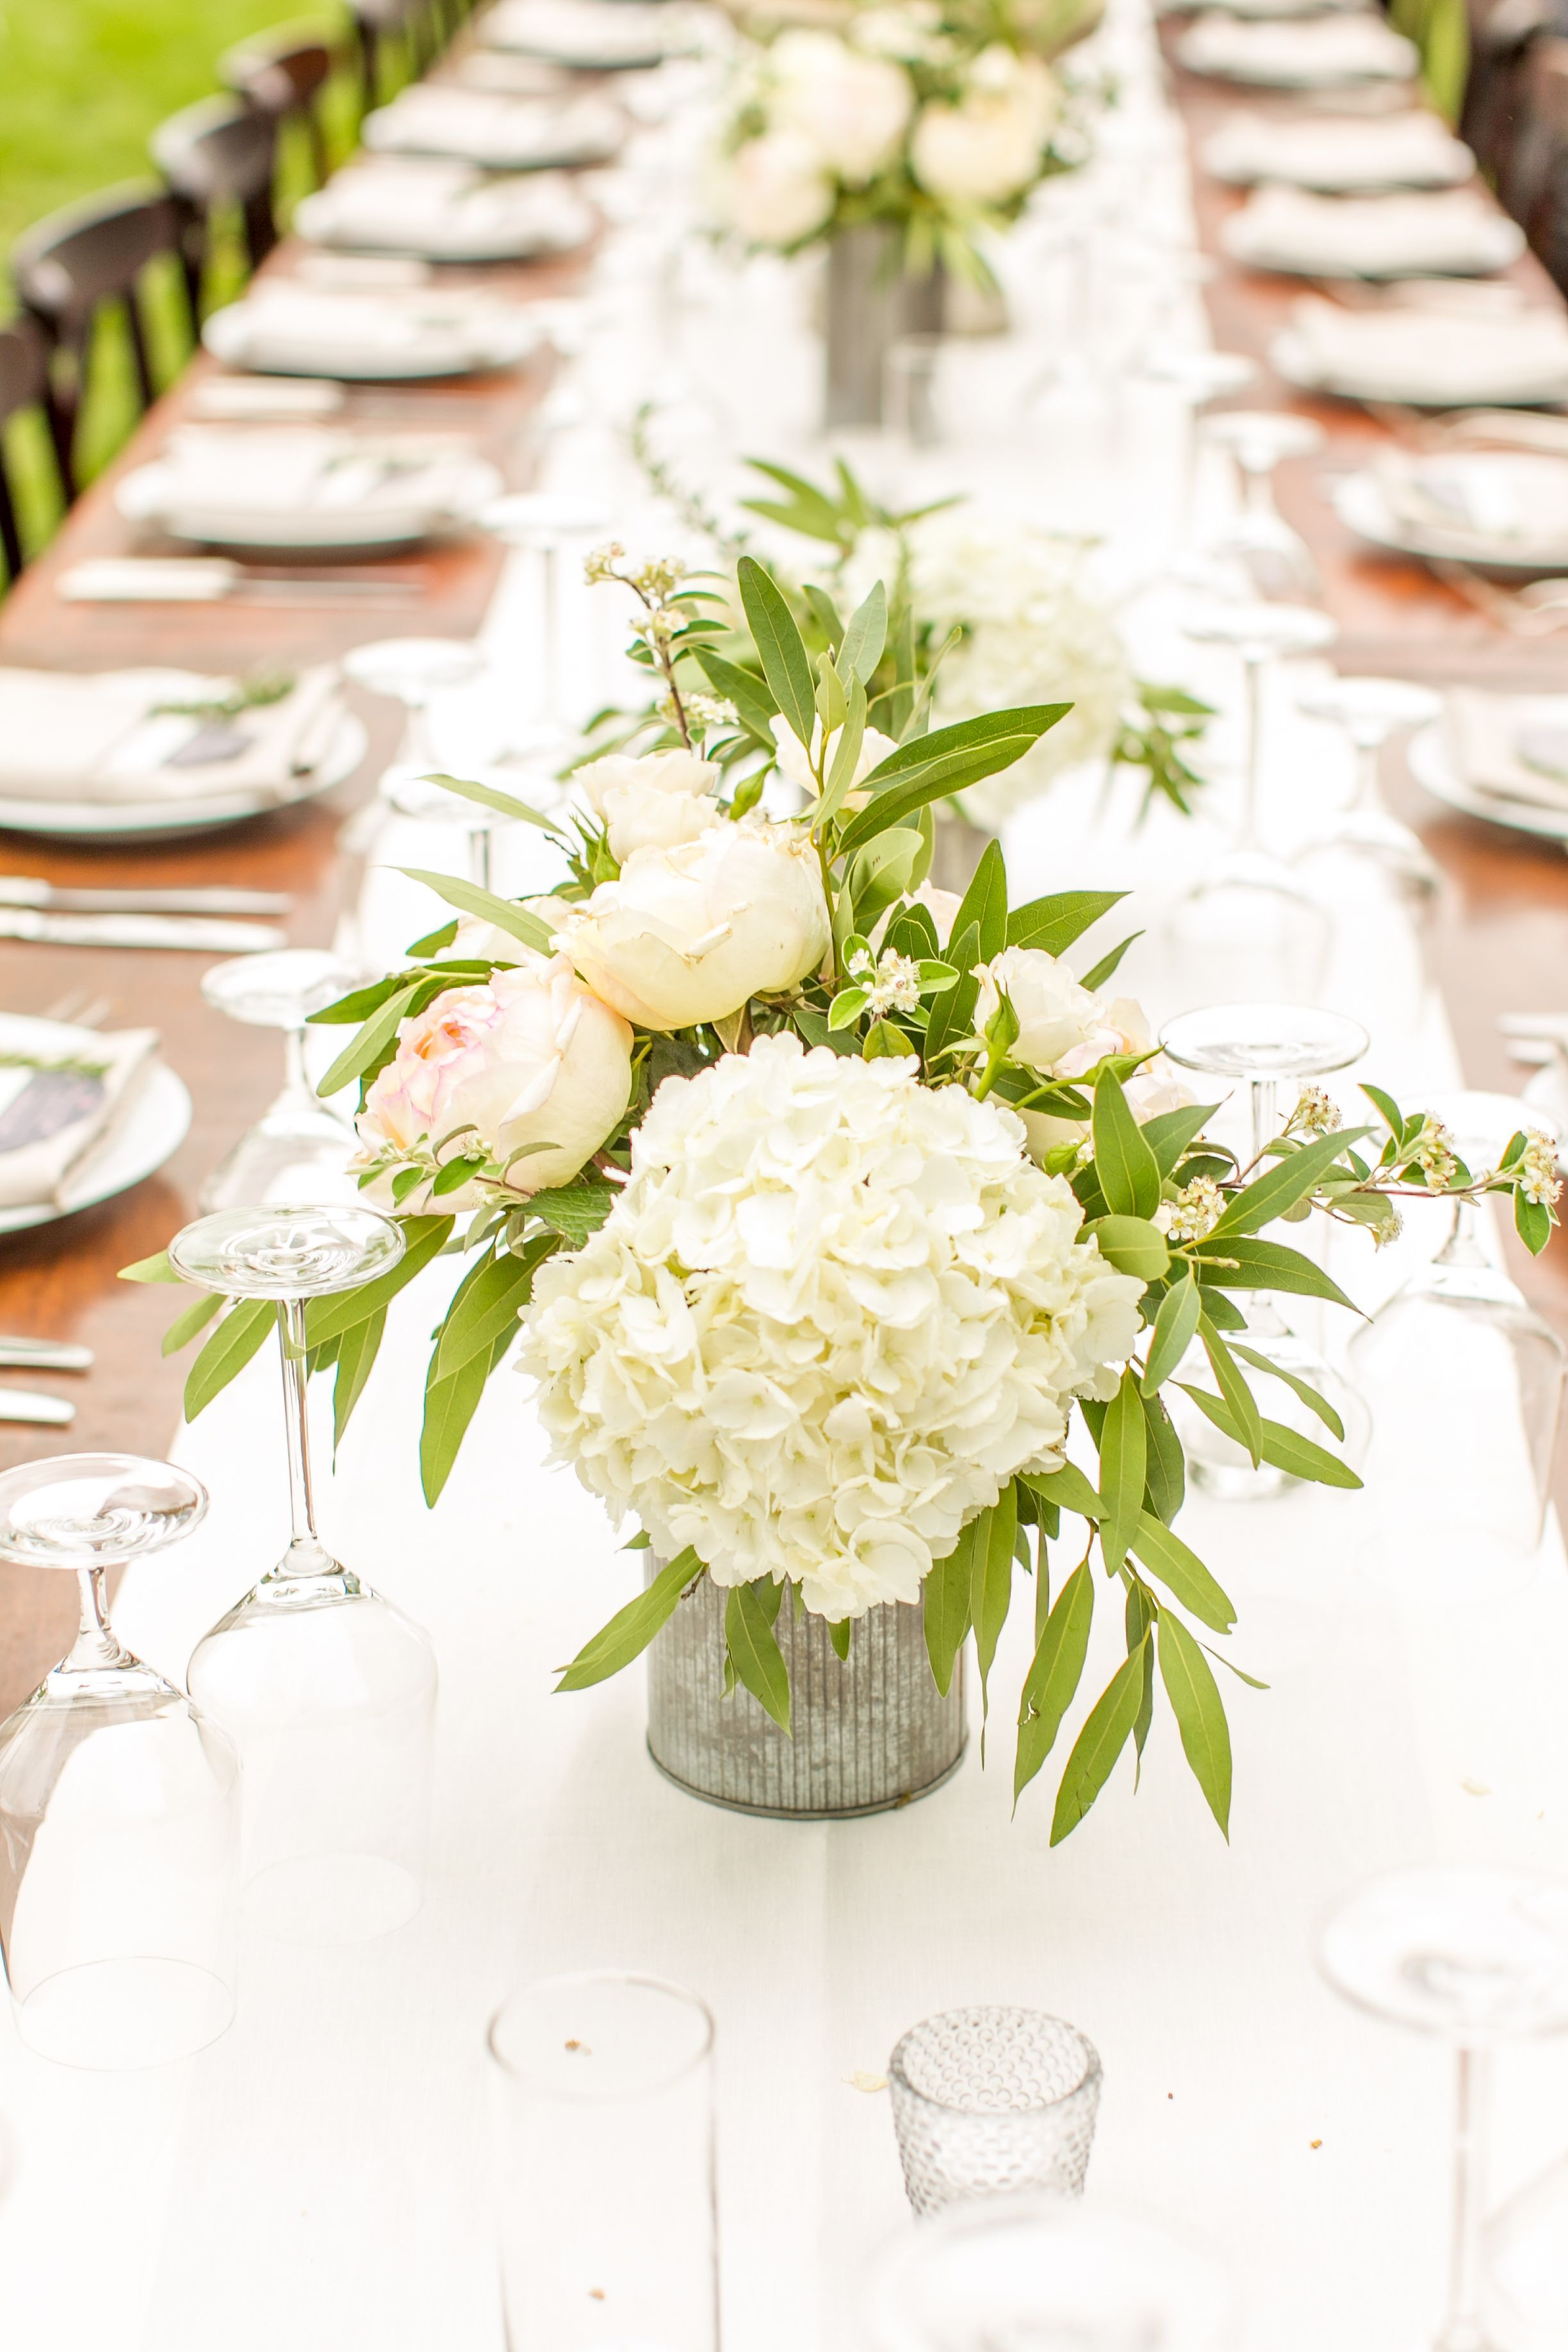 Need wedding ideas? Check out this lush white hydrangea centerpieces ...